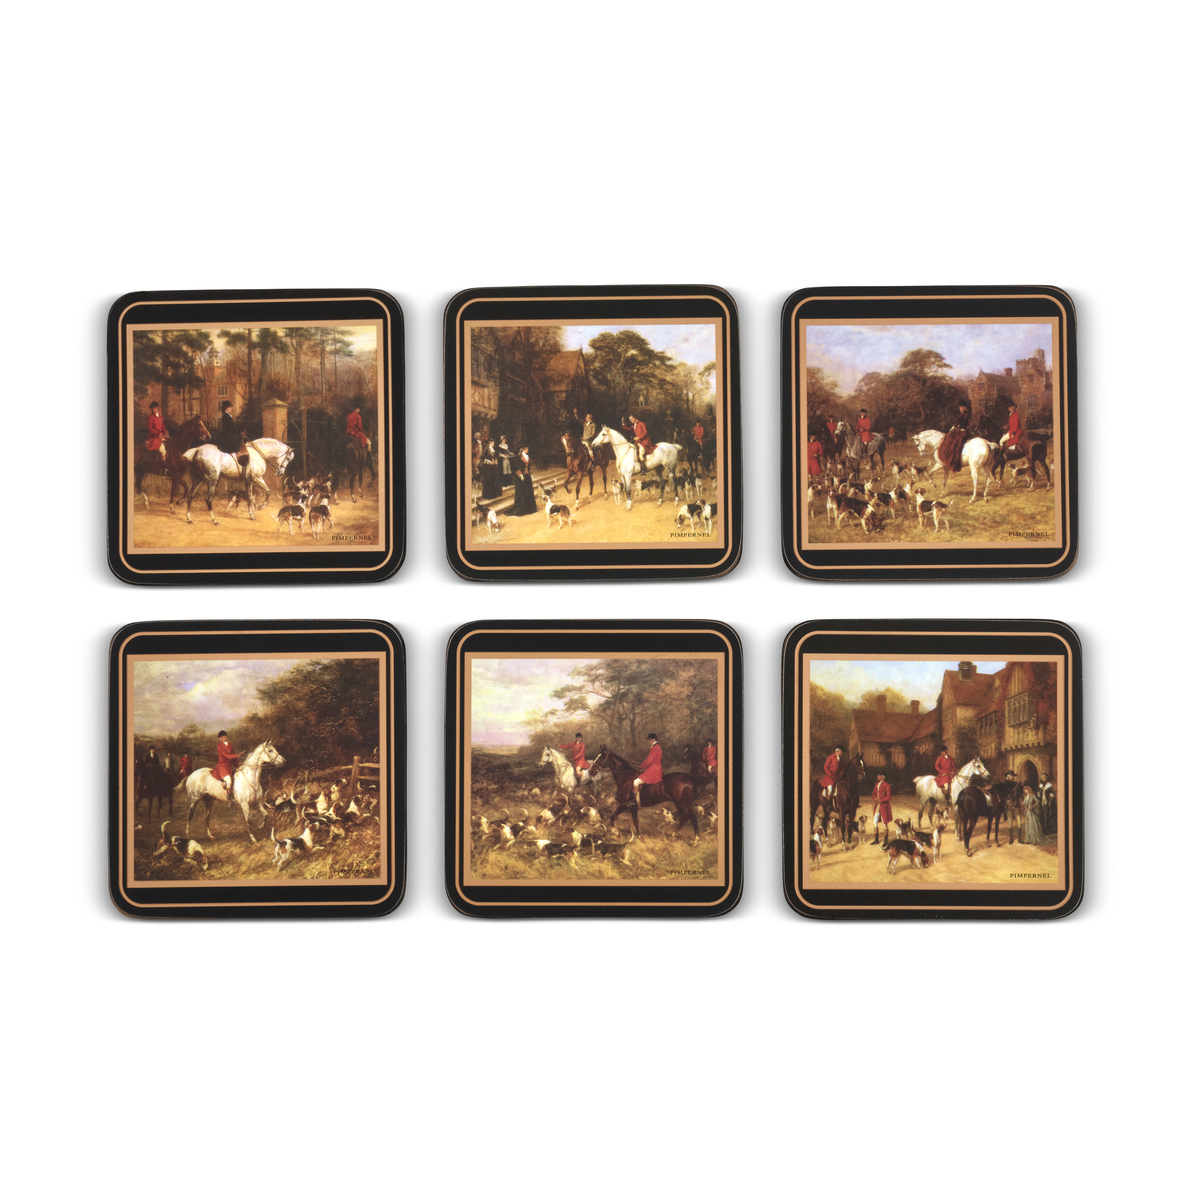 Pimpernel Tally Ho Coasters Set of 6 image number 2